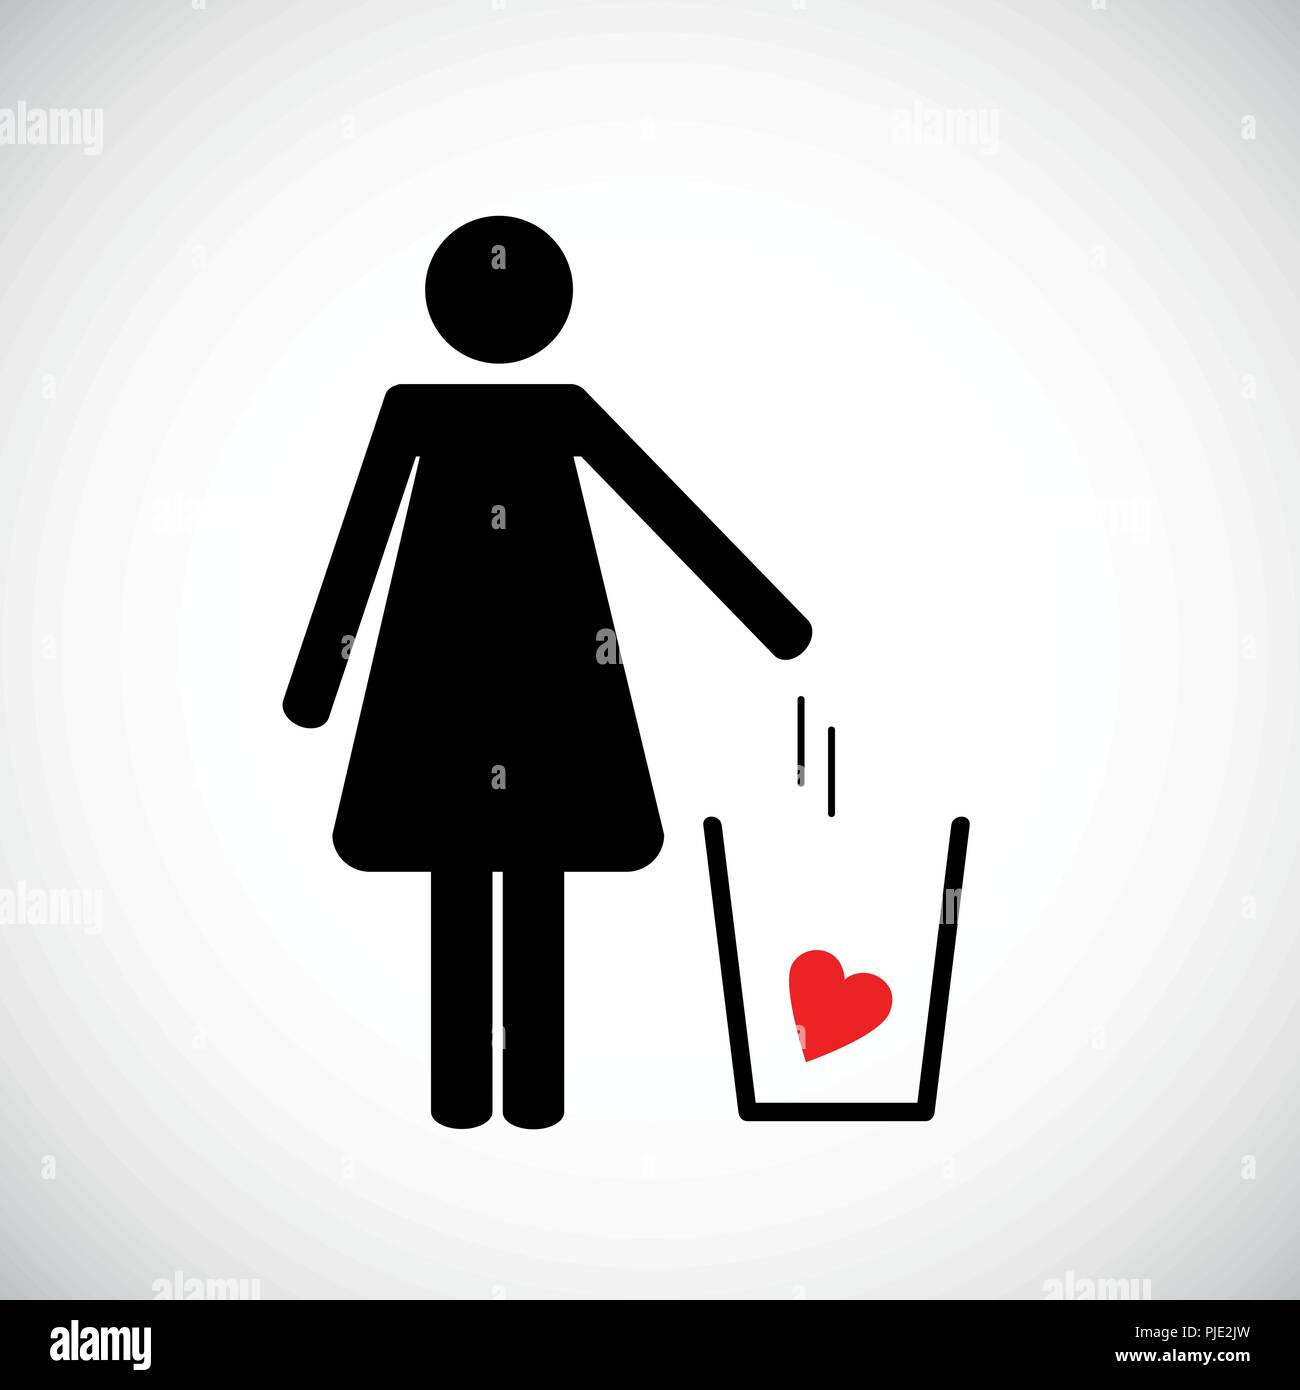 woman throws heart in the trash pictogram icon vector illsutration EPS10 - Stock Image